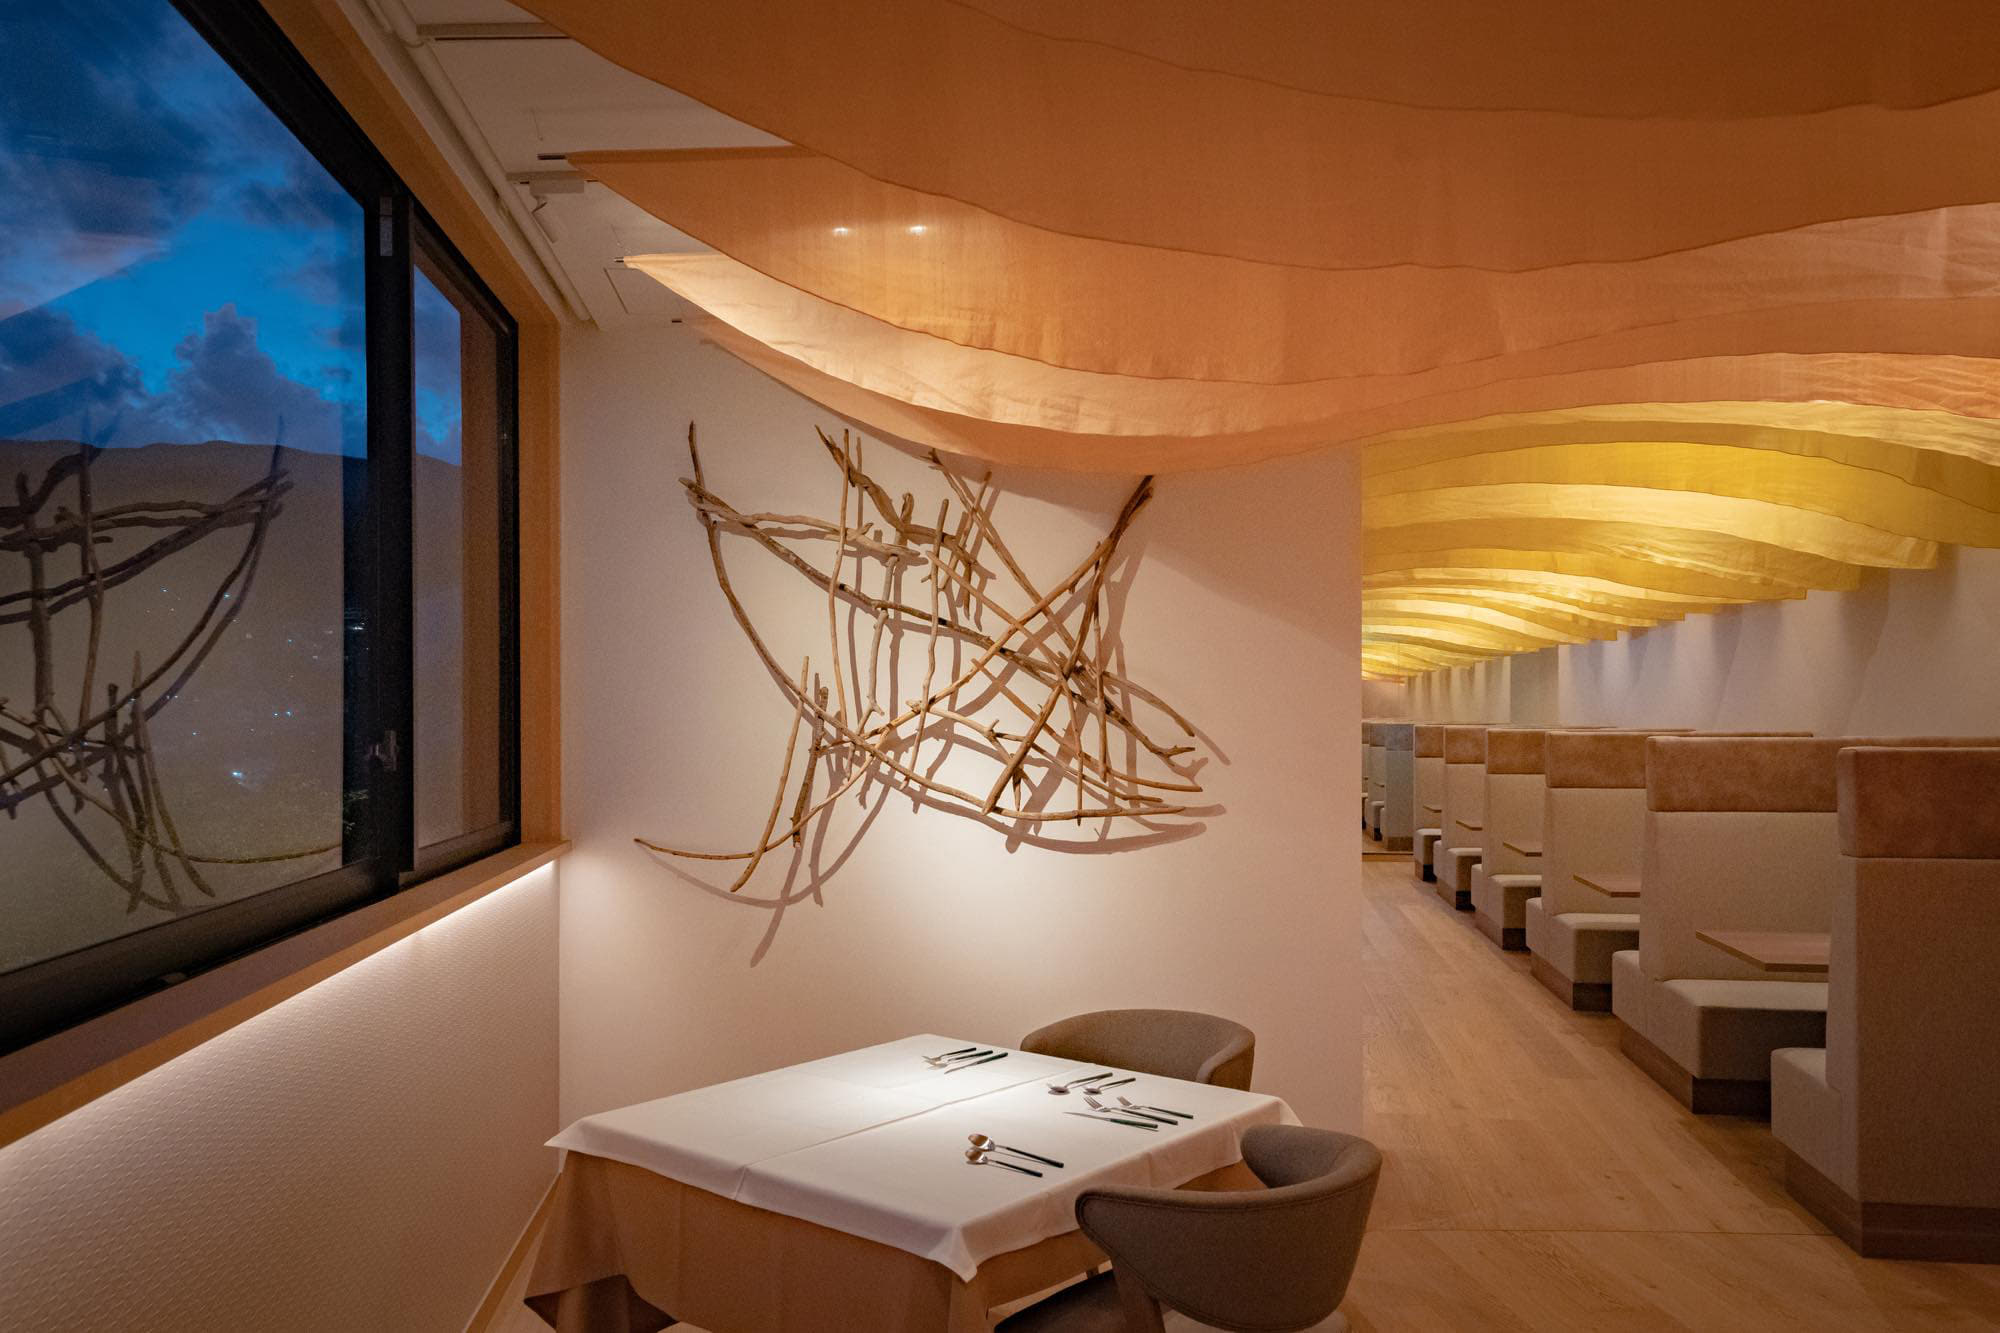 The art installation using silk and driftwoods, is a work by Koji Arai, a fashion designer based in Atami.